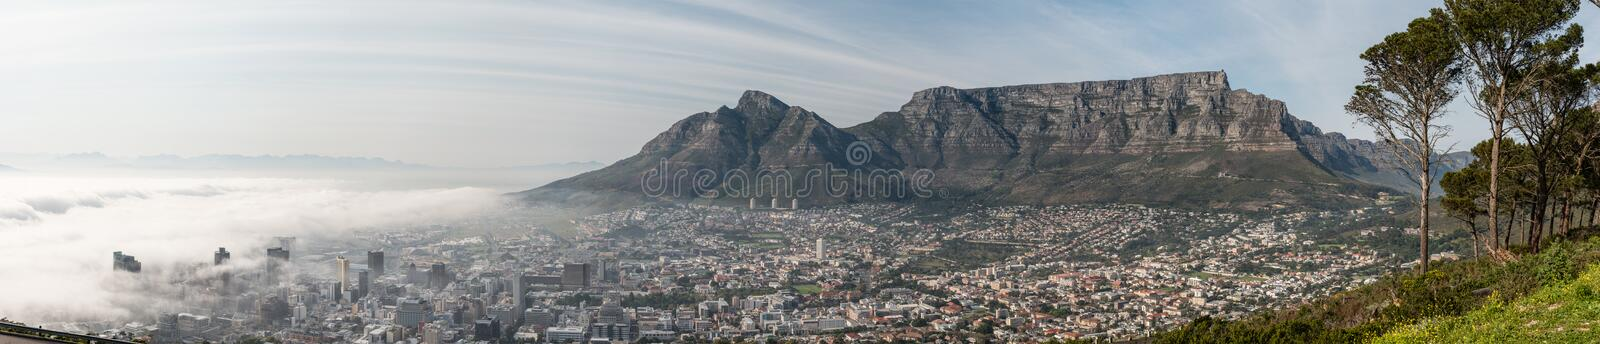 Cape Town früh morgens stockfoto